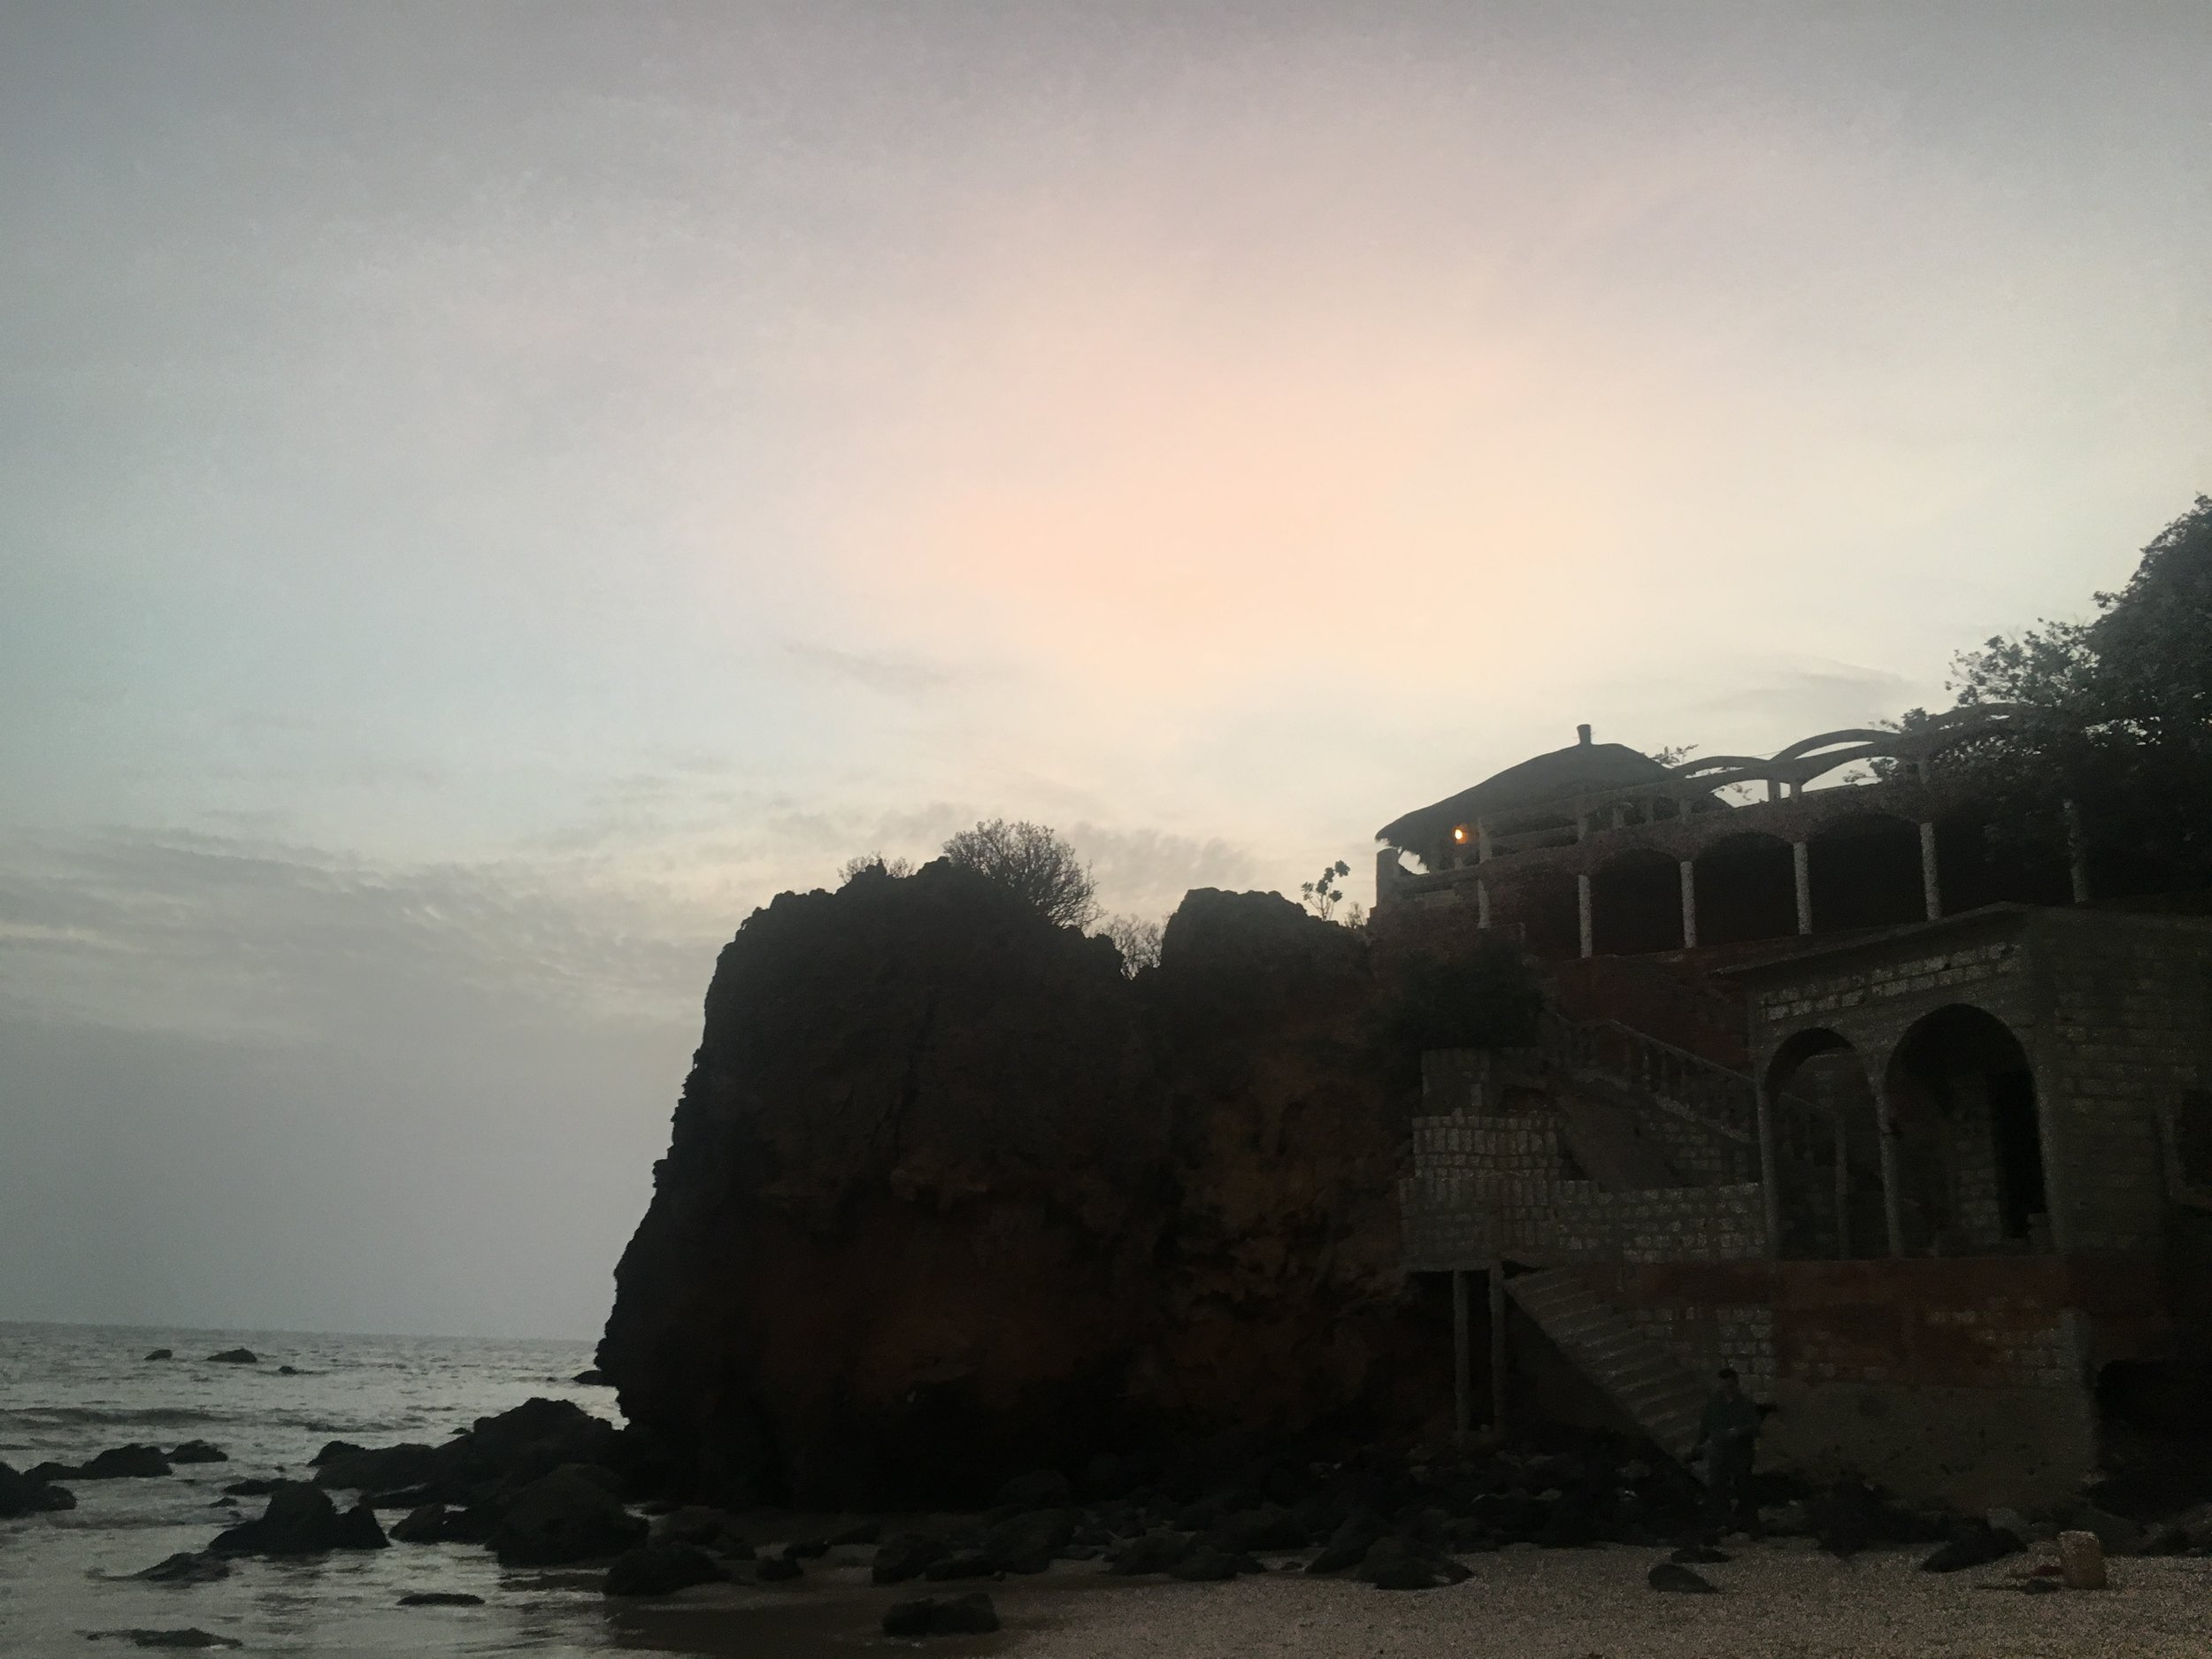 The cliffs and beach in Toubab Dialaw